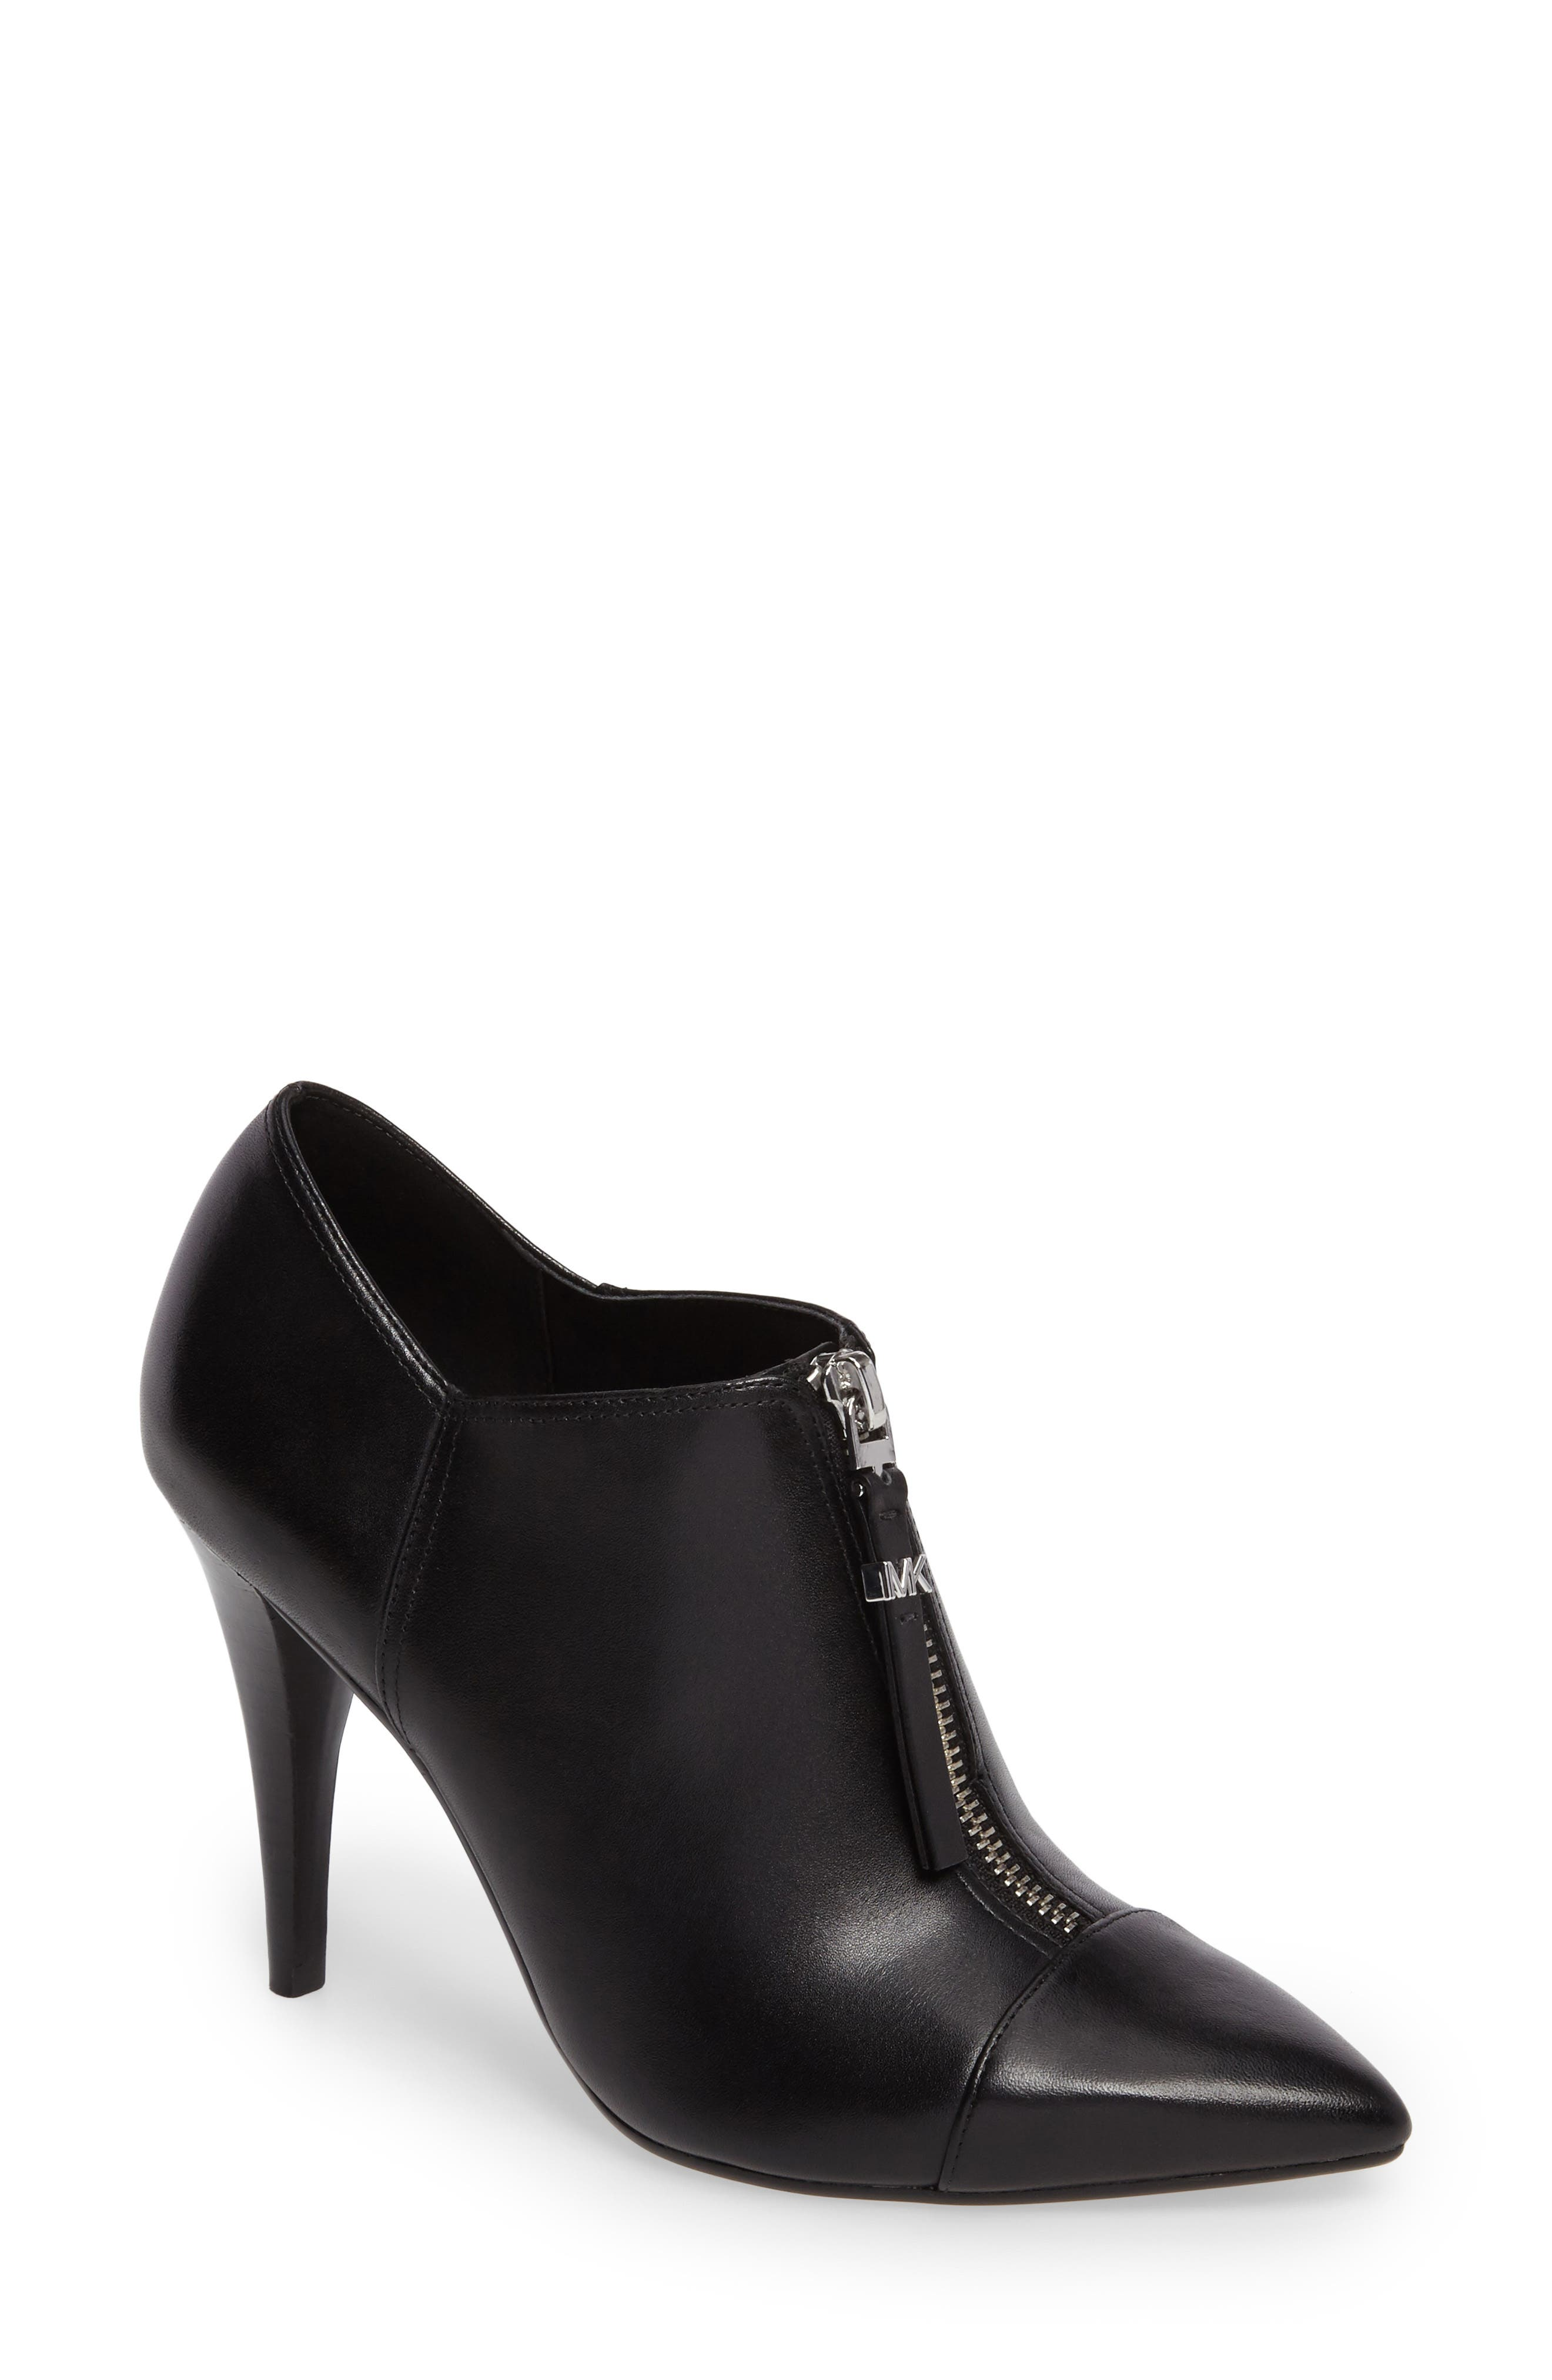 09f2c72cf24 Buy michael kors ankle booties   OFF55% Discounted